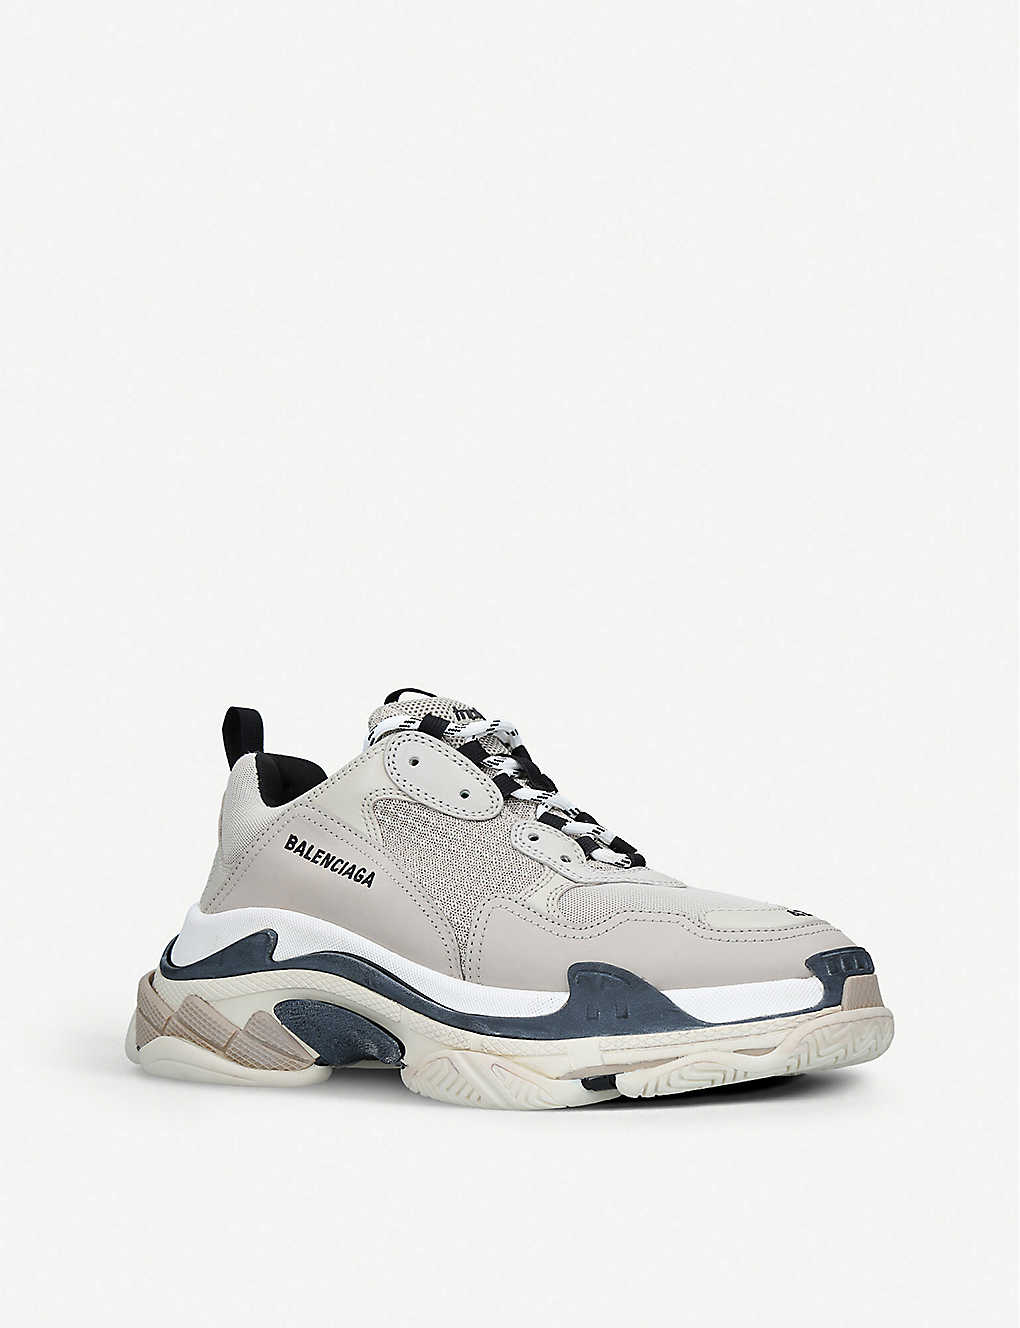 33e1a1506206 ... Mens Triple S leather and mesh trainers - Greypcmb ...